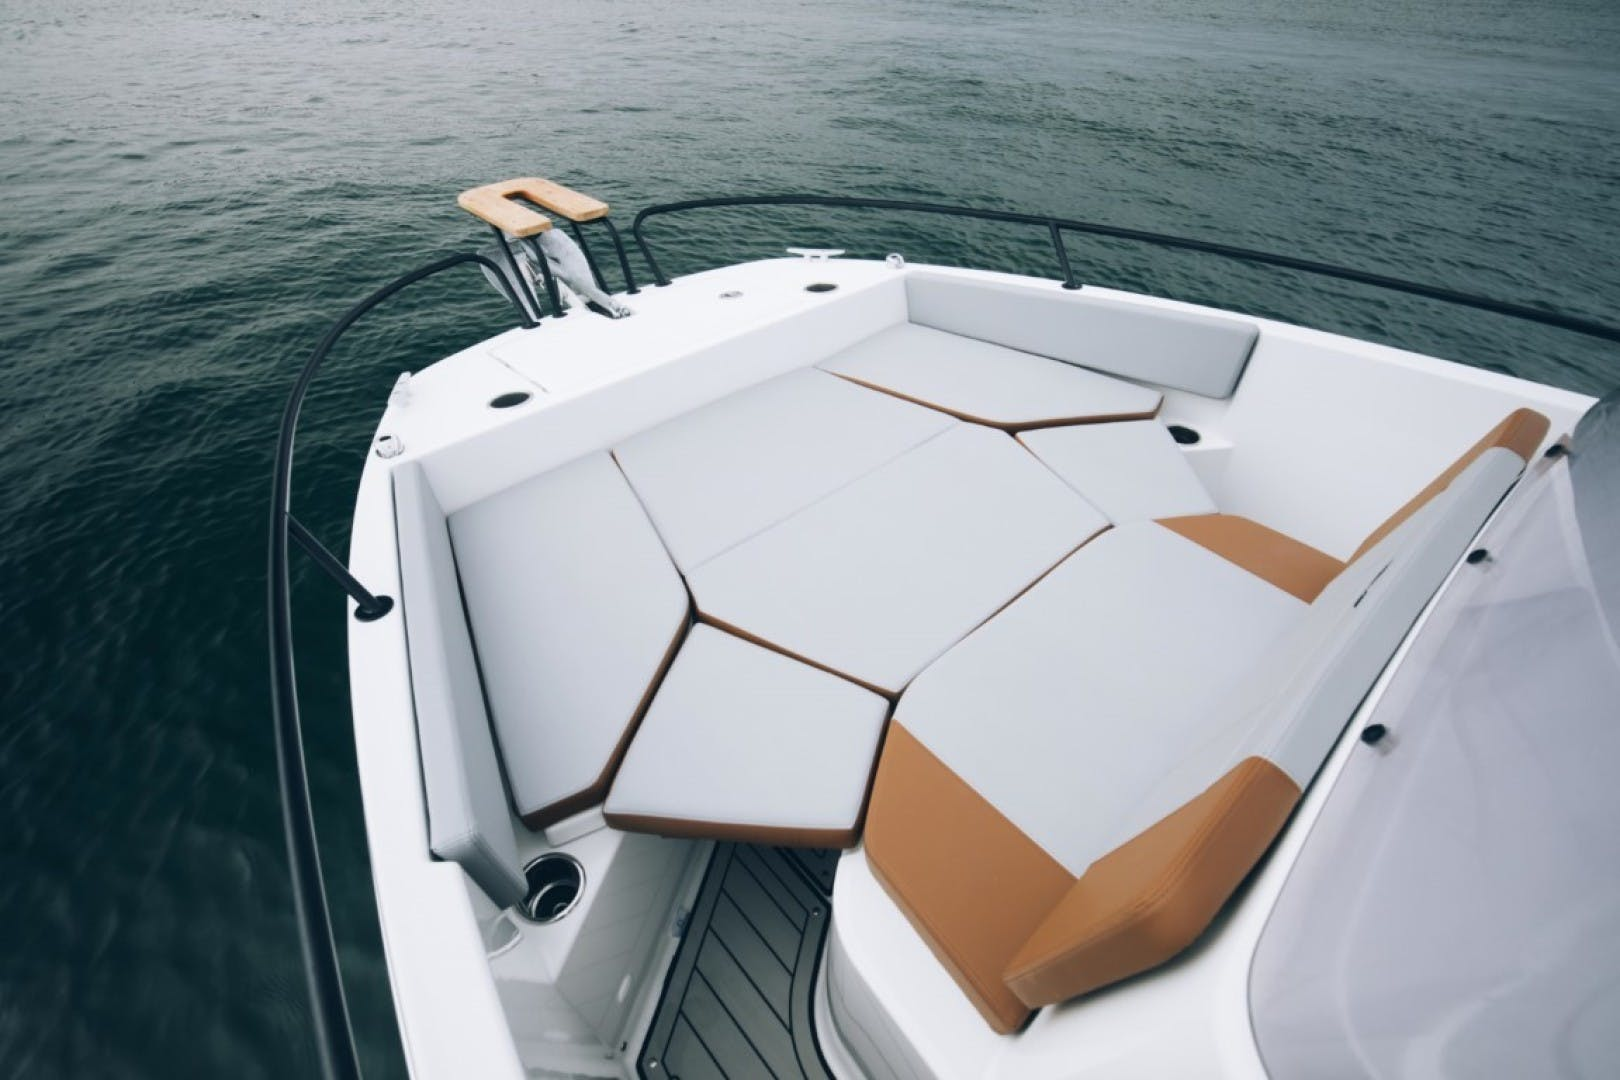 2021 Beneteau 21' Flyer 7 Spacedeck  | Picture 7 of 13